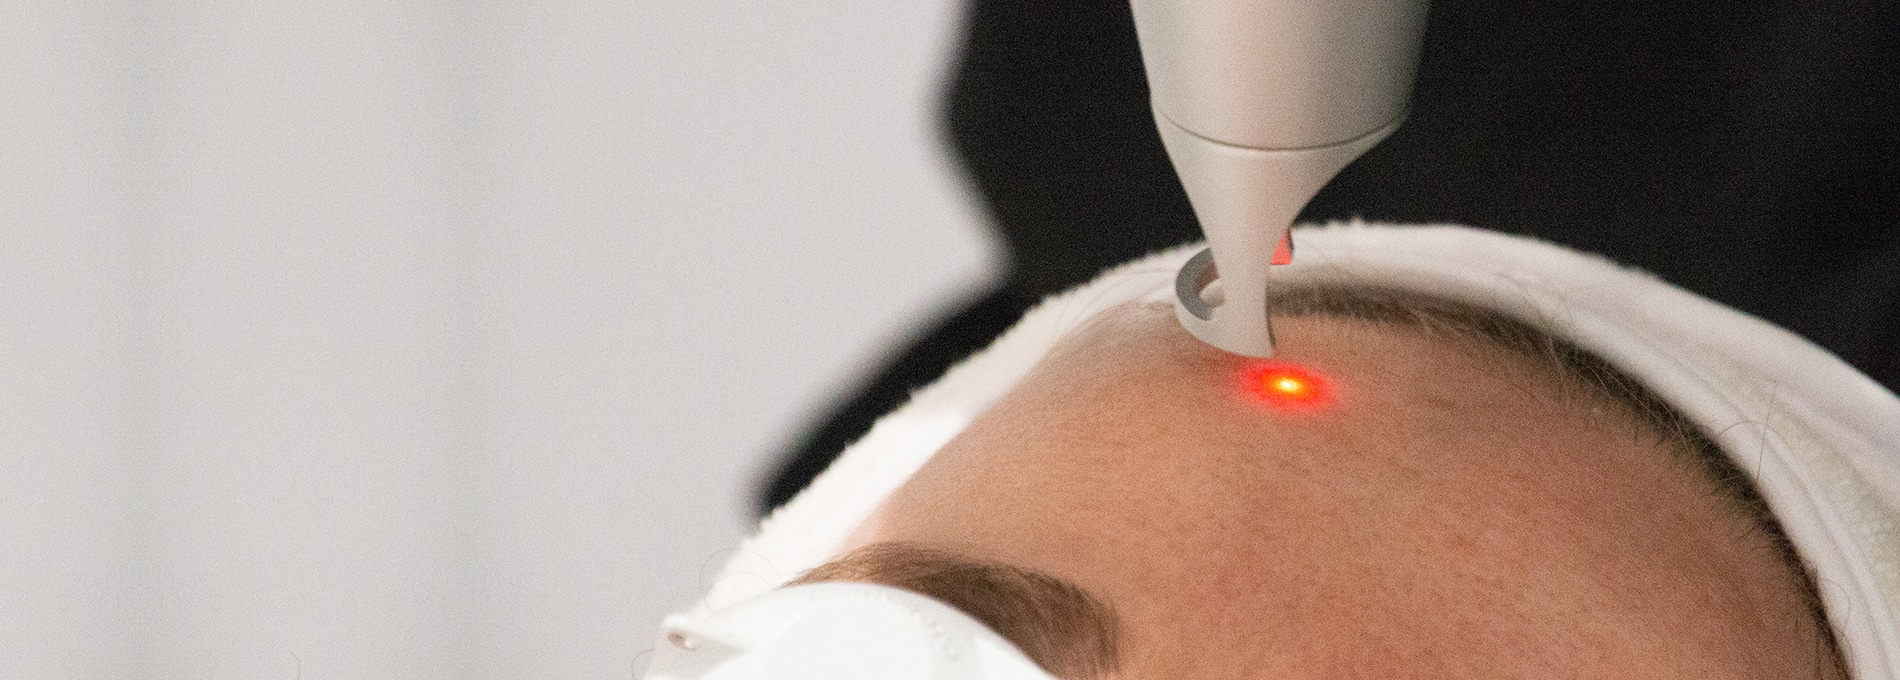 Pico Rejuvenation Even Skin Tone In Fewer Treatments